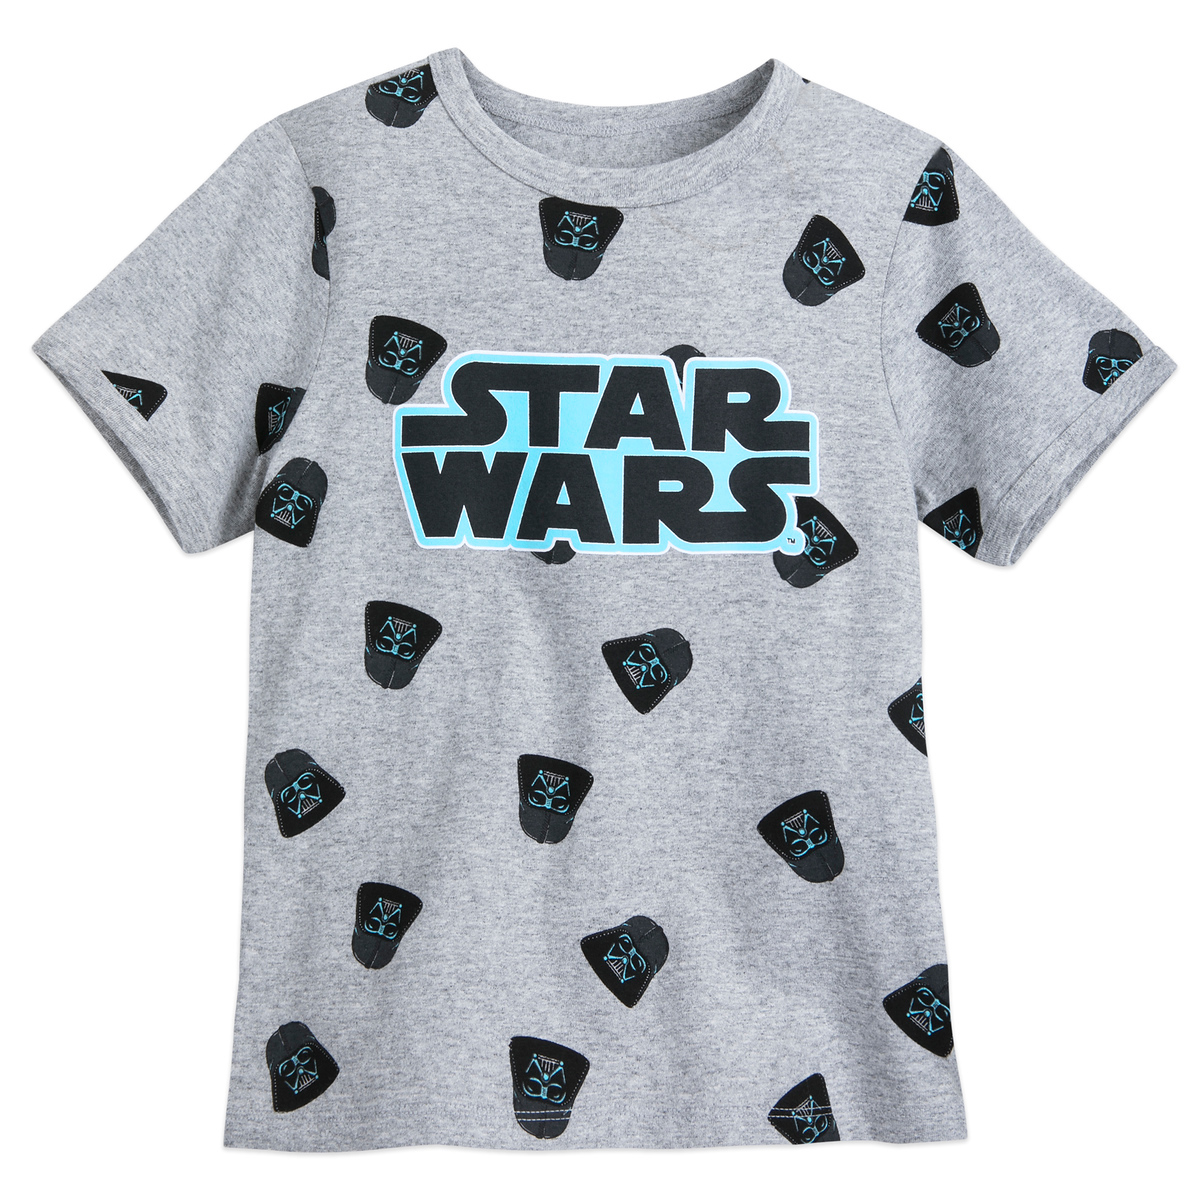 New Star Wars T-Shirts, Pin & Lithograph Coming Out On May